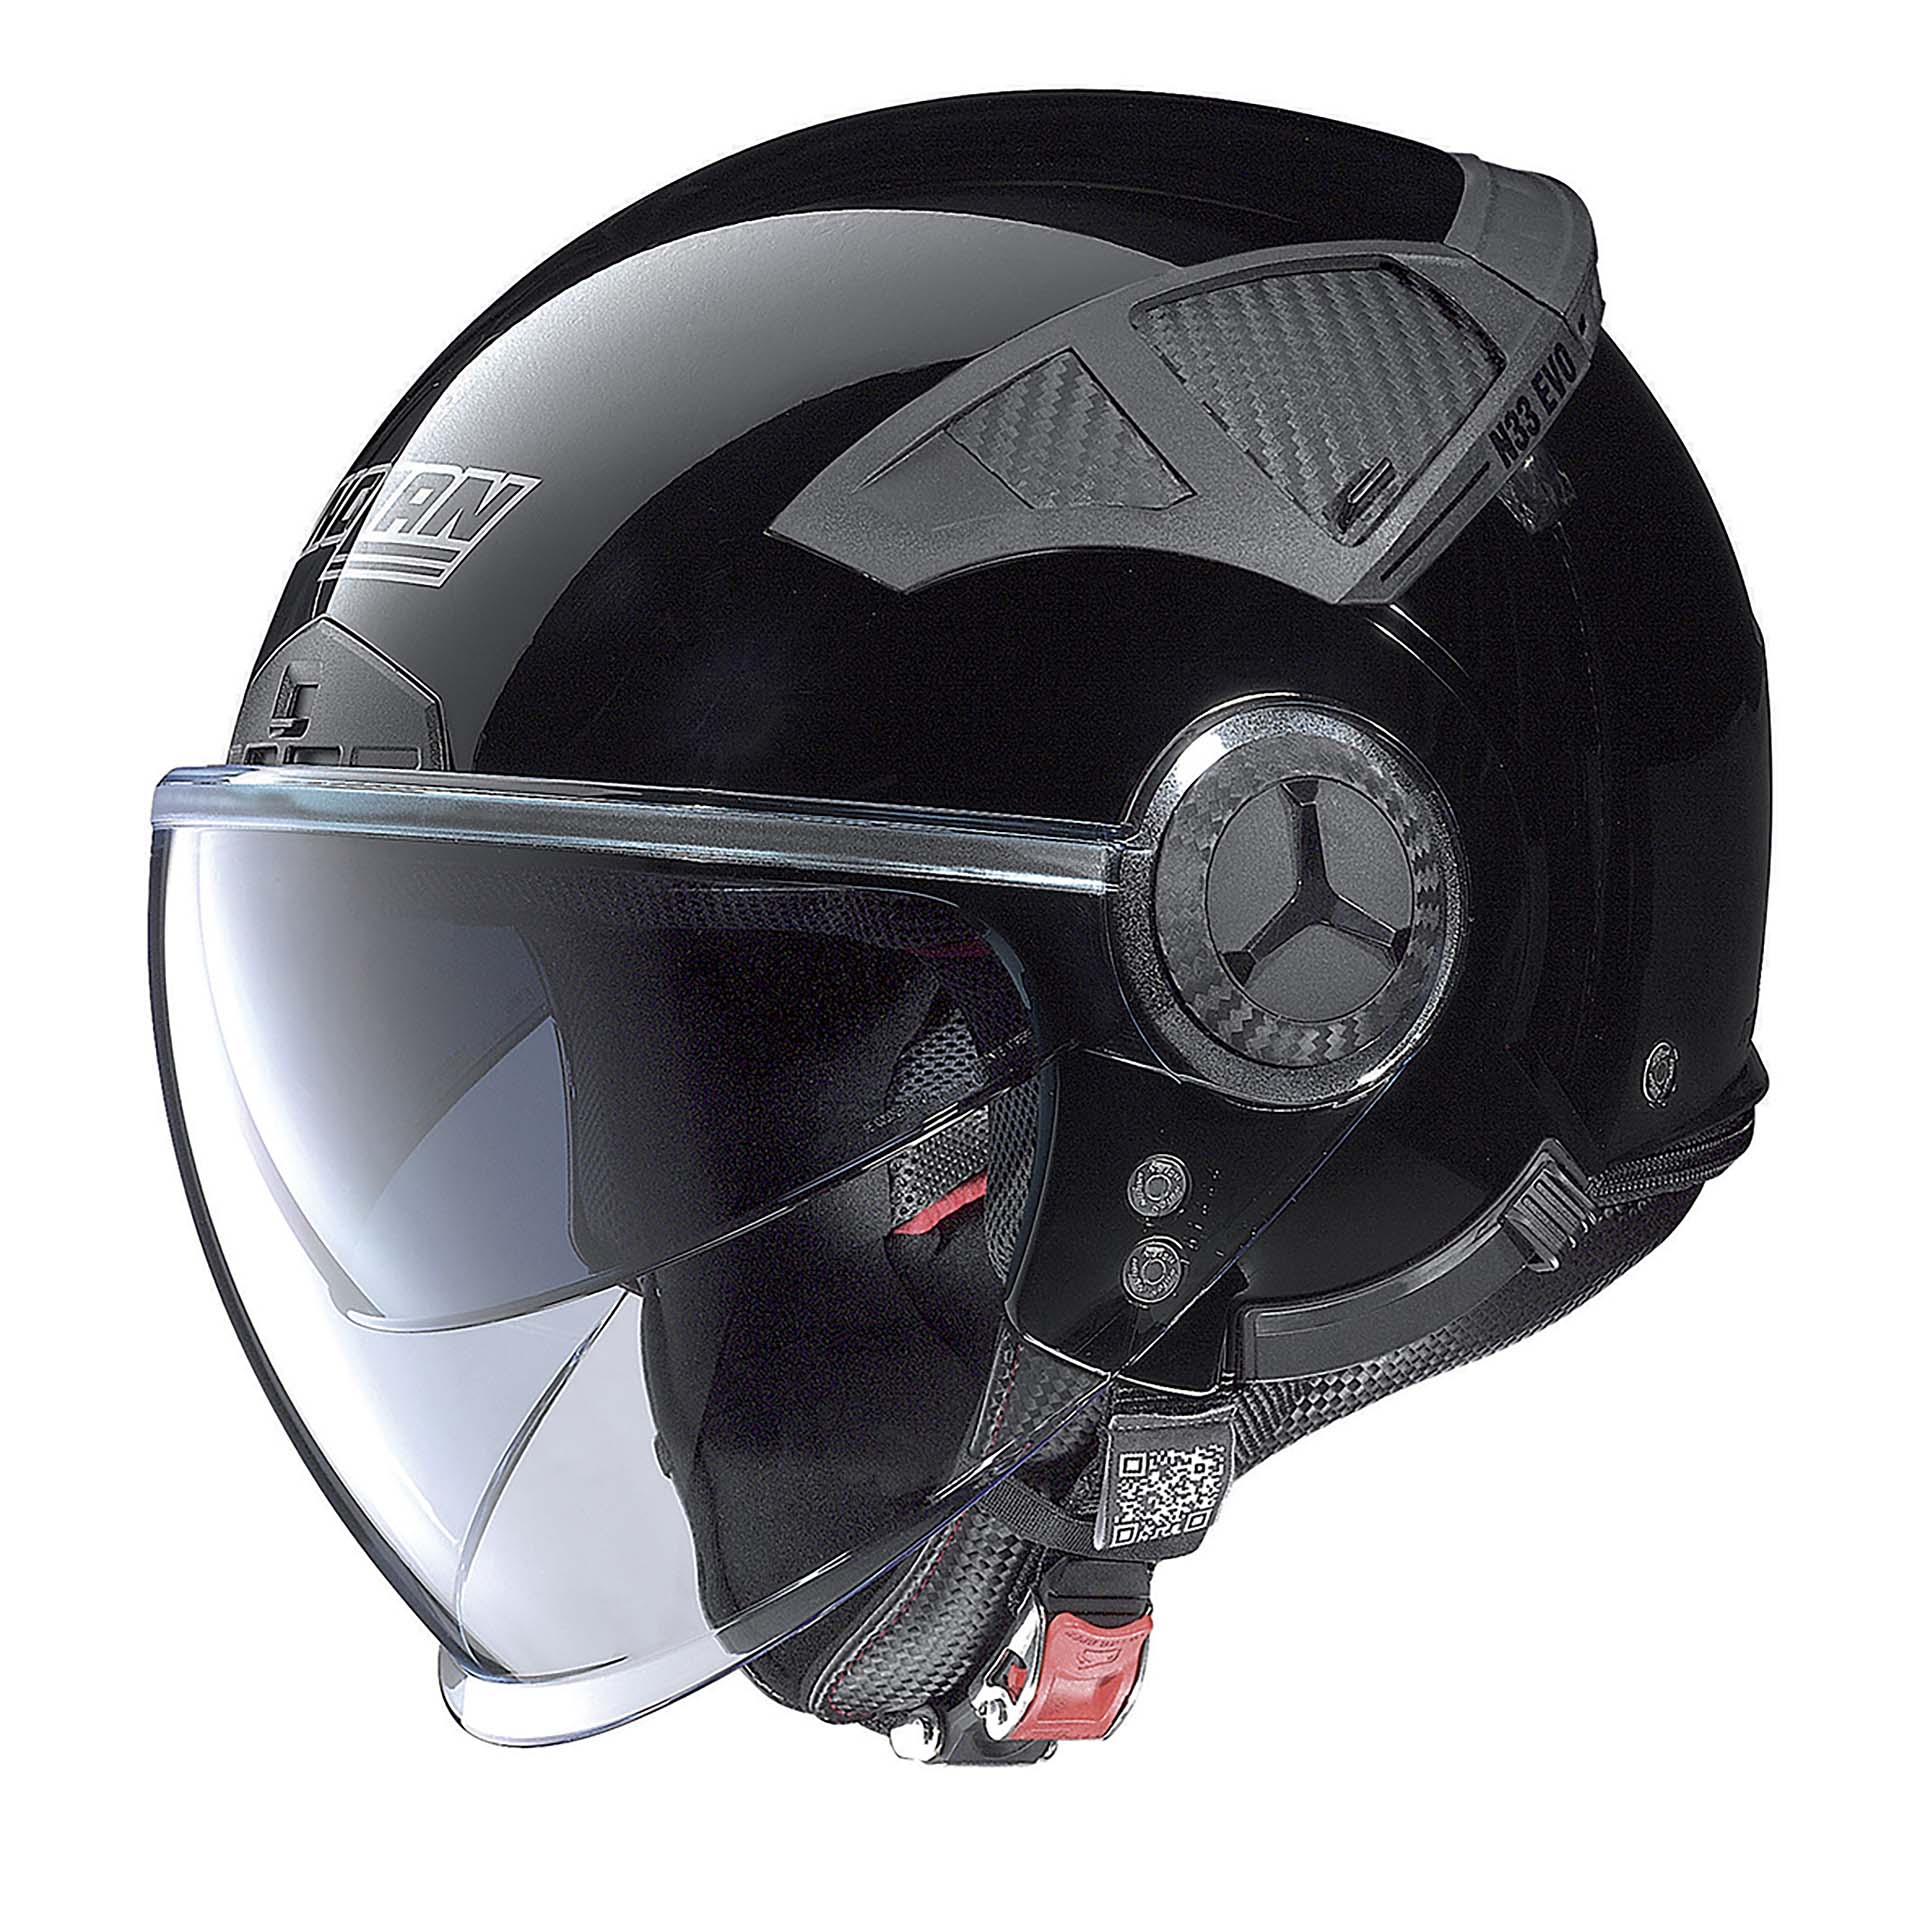 Casco Nolan N33 EVO color nero